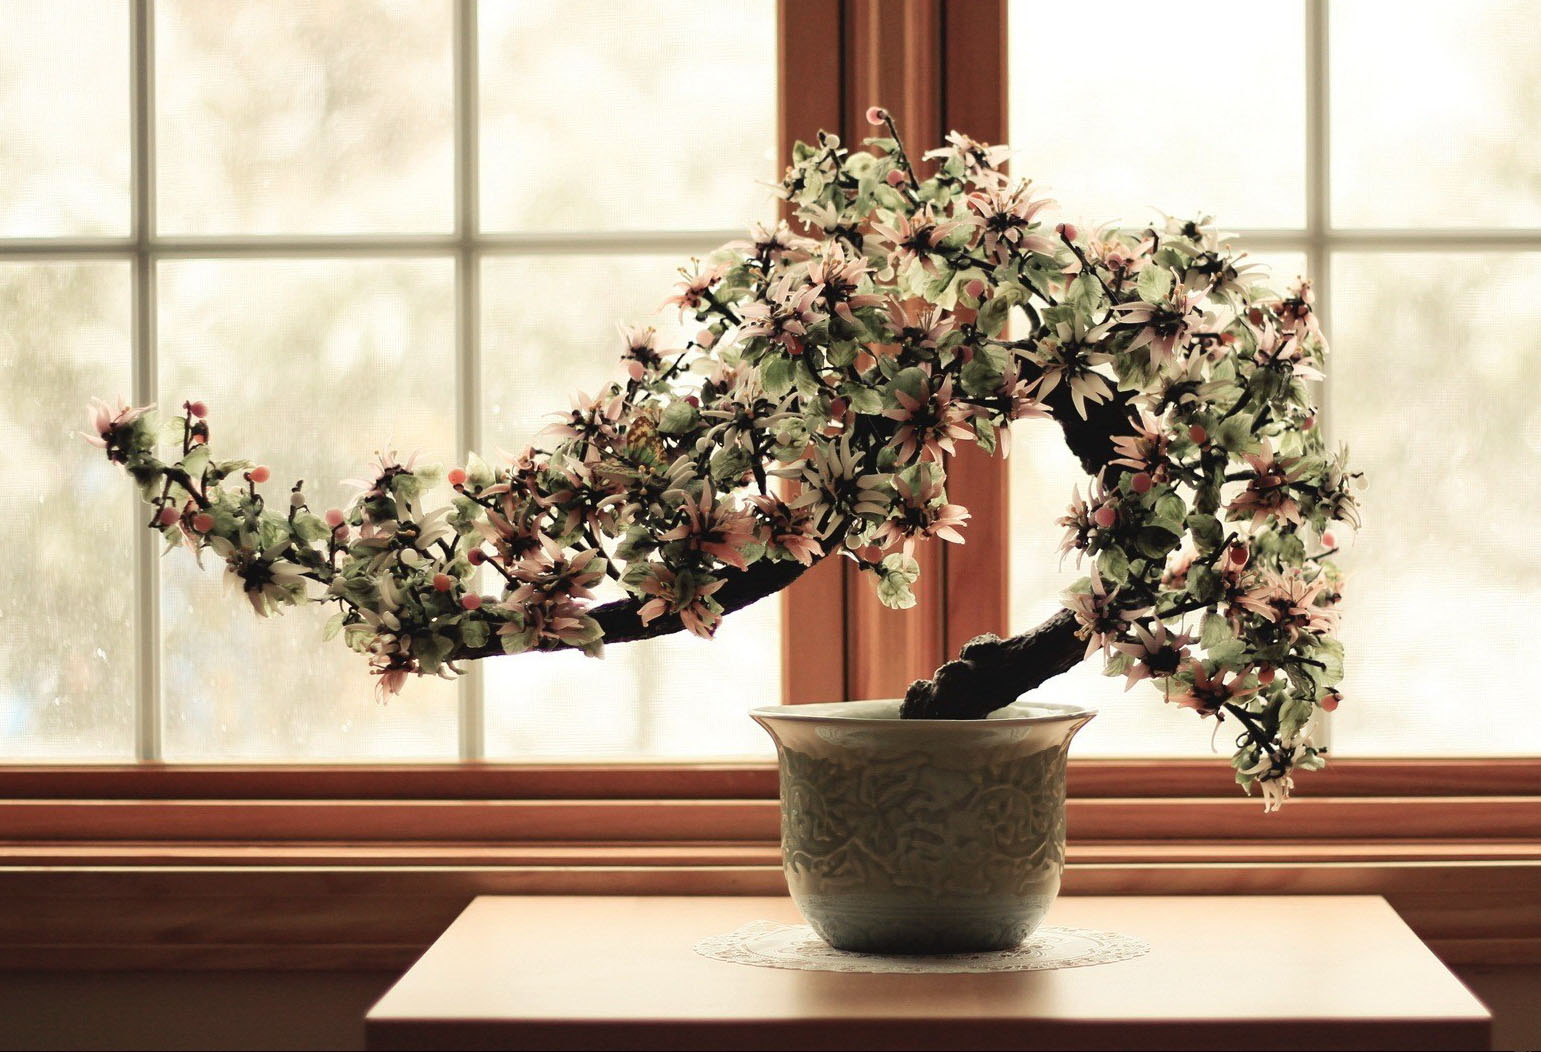 primavera come potare il bonsai